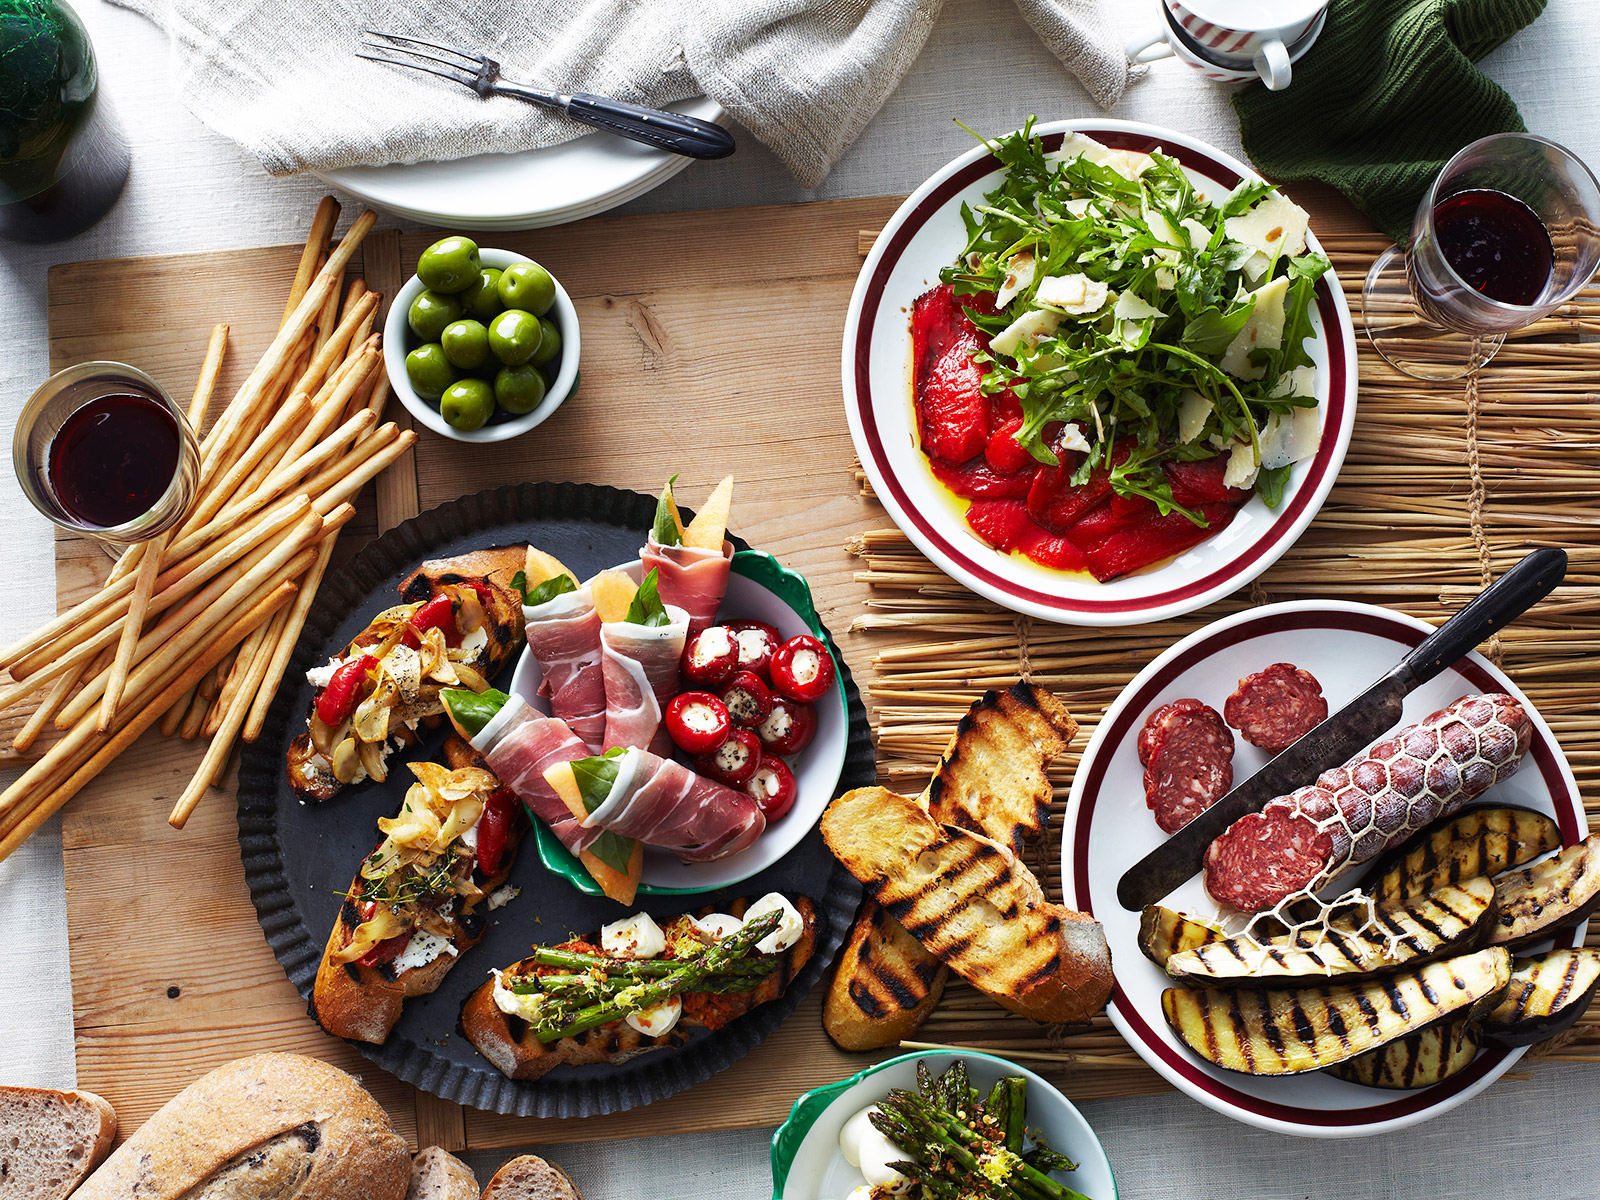 culinary trends for next year